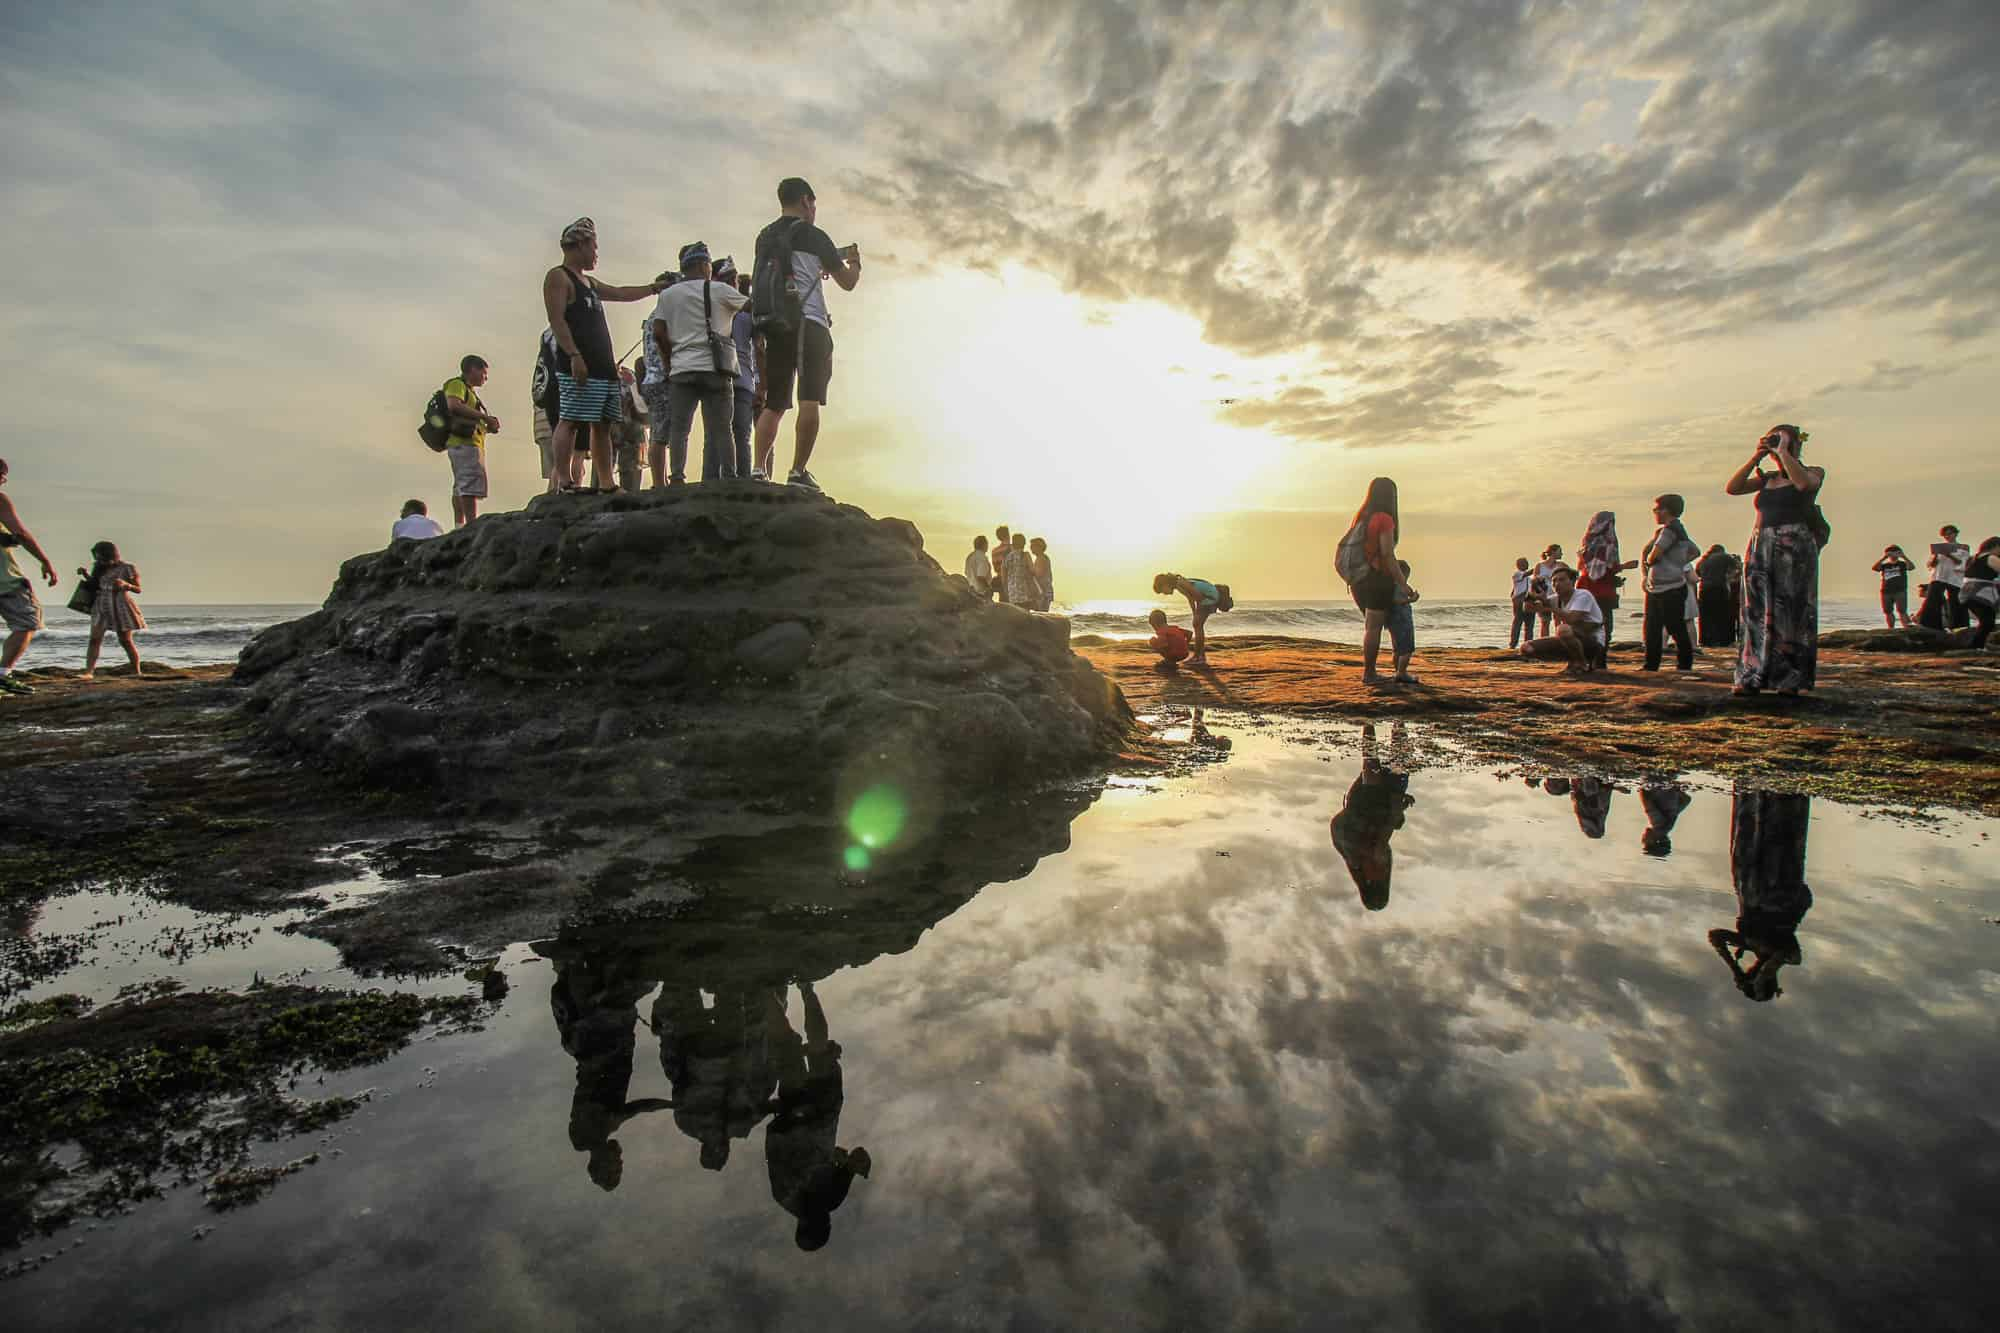 Travel Photography for Beginners: 6 Tips for Great Travel Photos